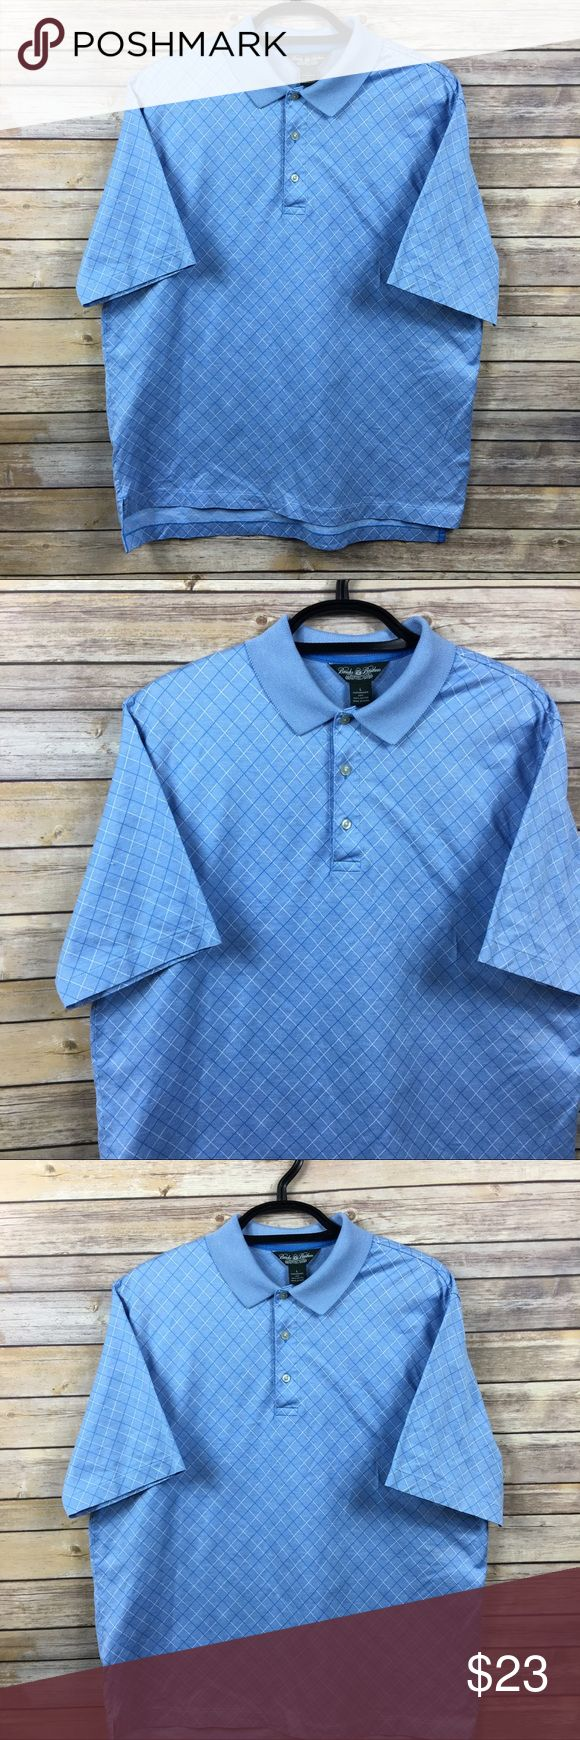 Brooks Brothers Country Club Performance Golf Polo Brooks Brothers Country Club  Performance Knit Golf Polo Shirt Blue 100% Cotton  Size L Armpit to armpit 23 in Armpit to end of sleeve 5.5 in Shoulder to back hem 30 in Thanks for visiting! Brooks Brothers Shirts Polos